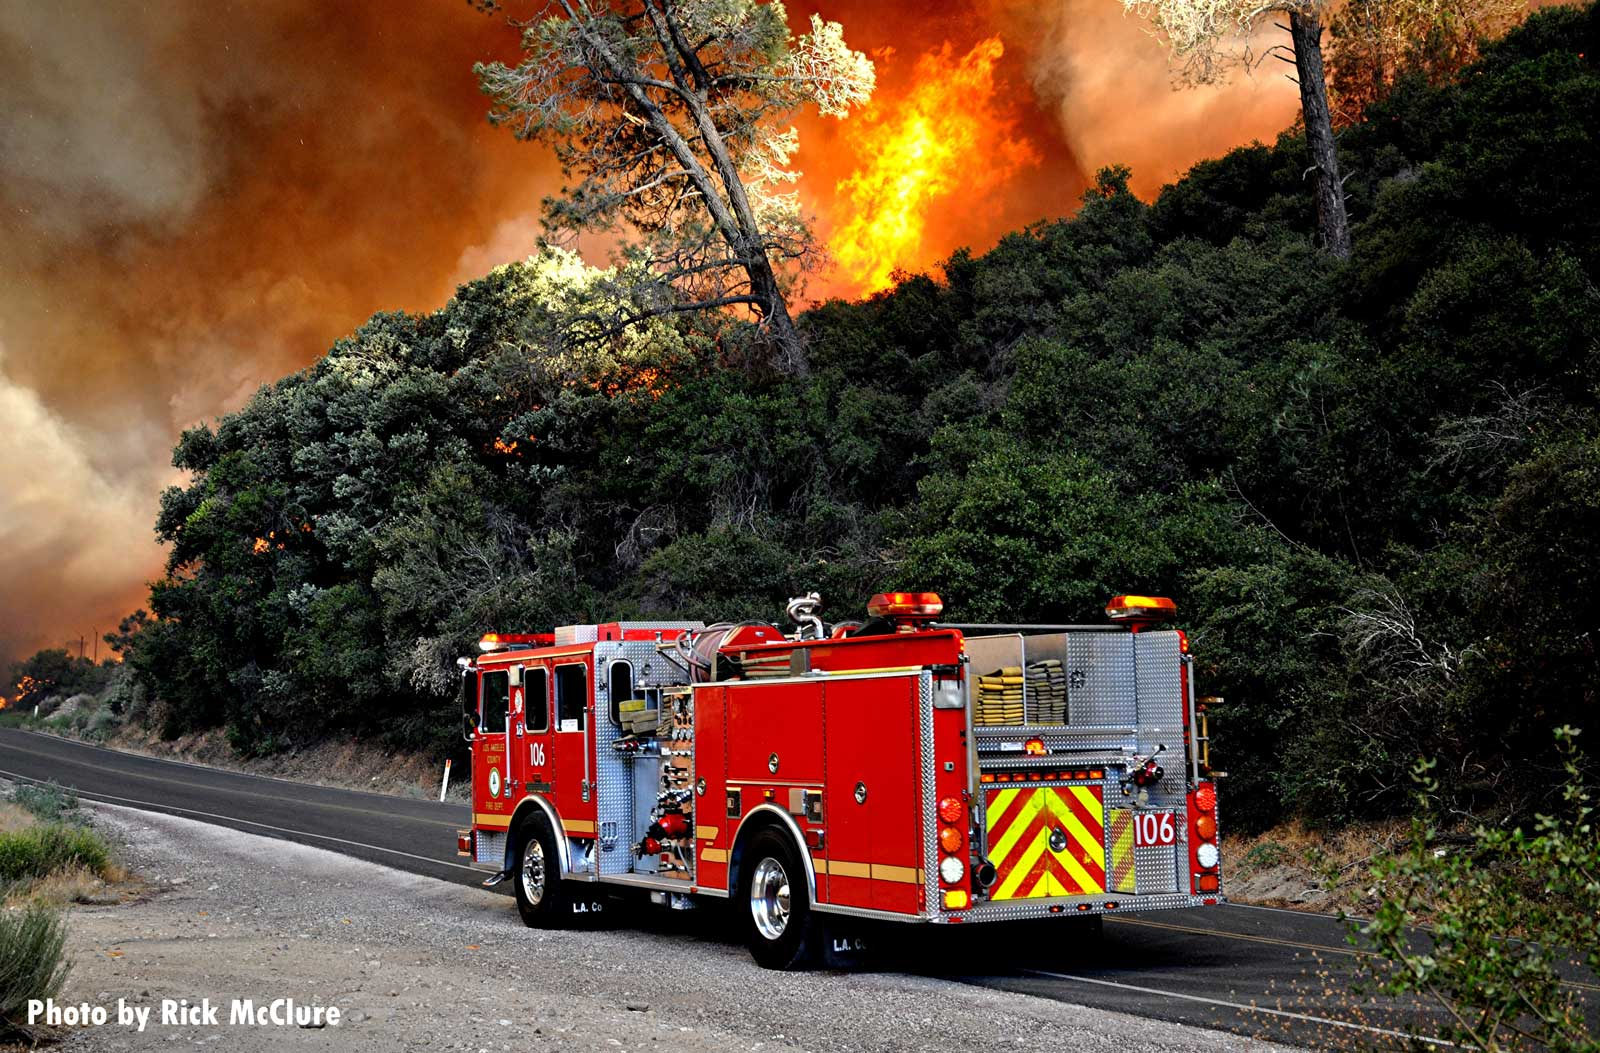 Fire truck with wildfire raging in background